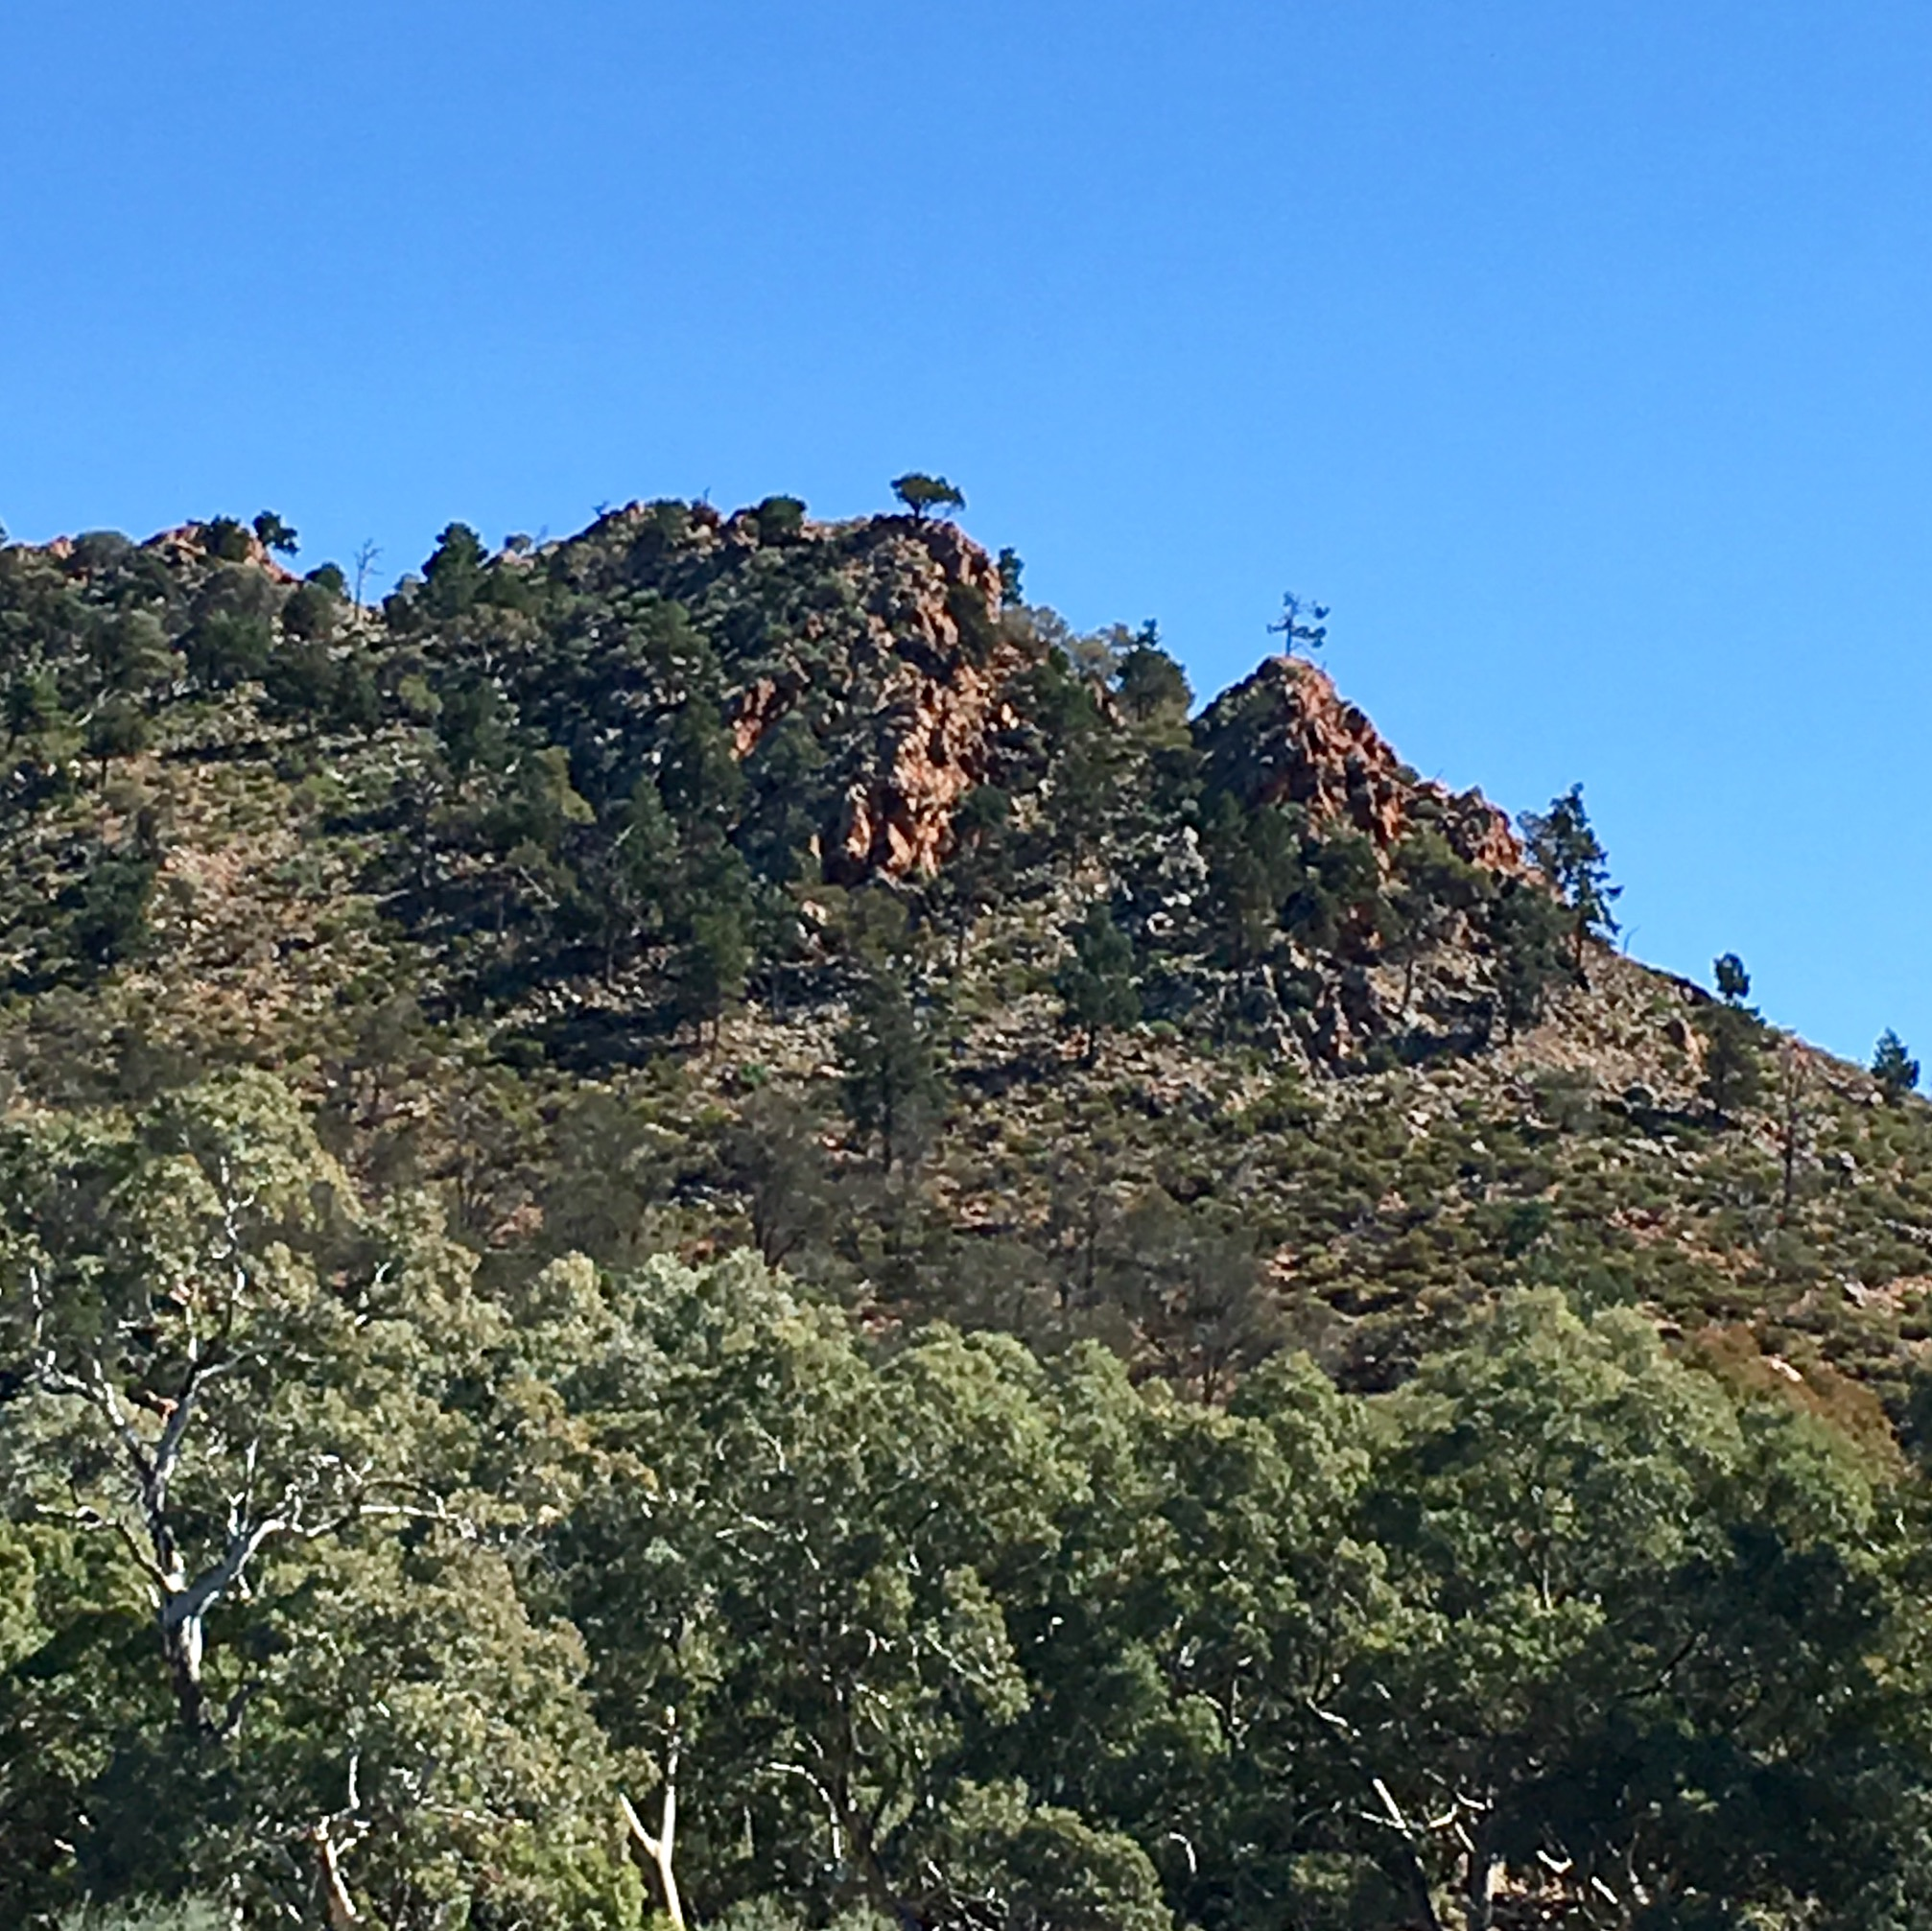 Rocky outcrop along the Frome River in the Flinders Ranges